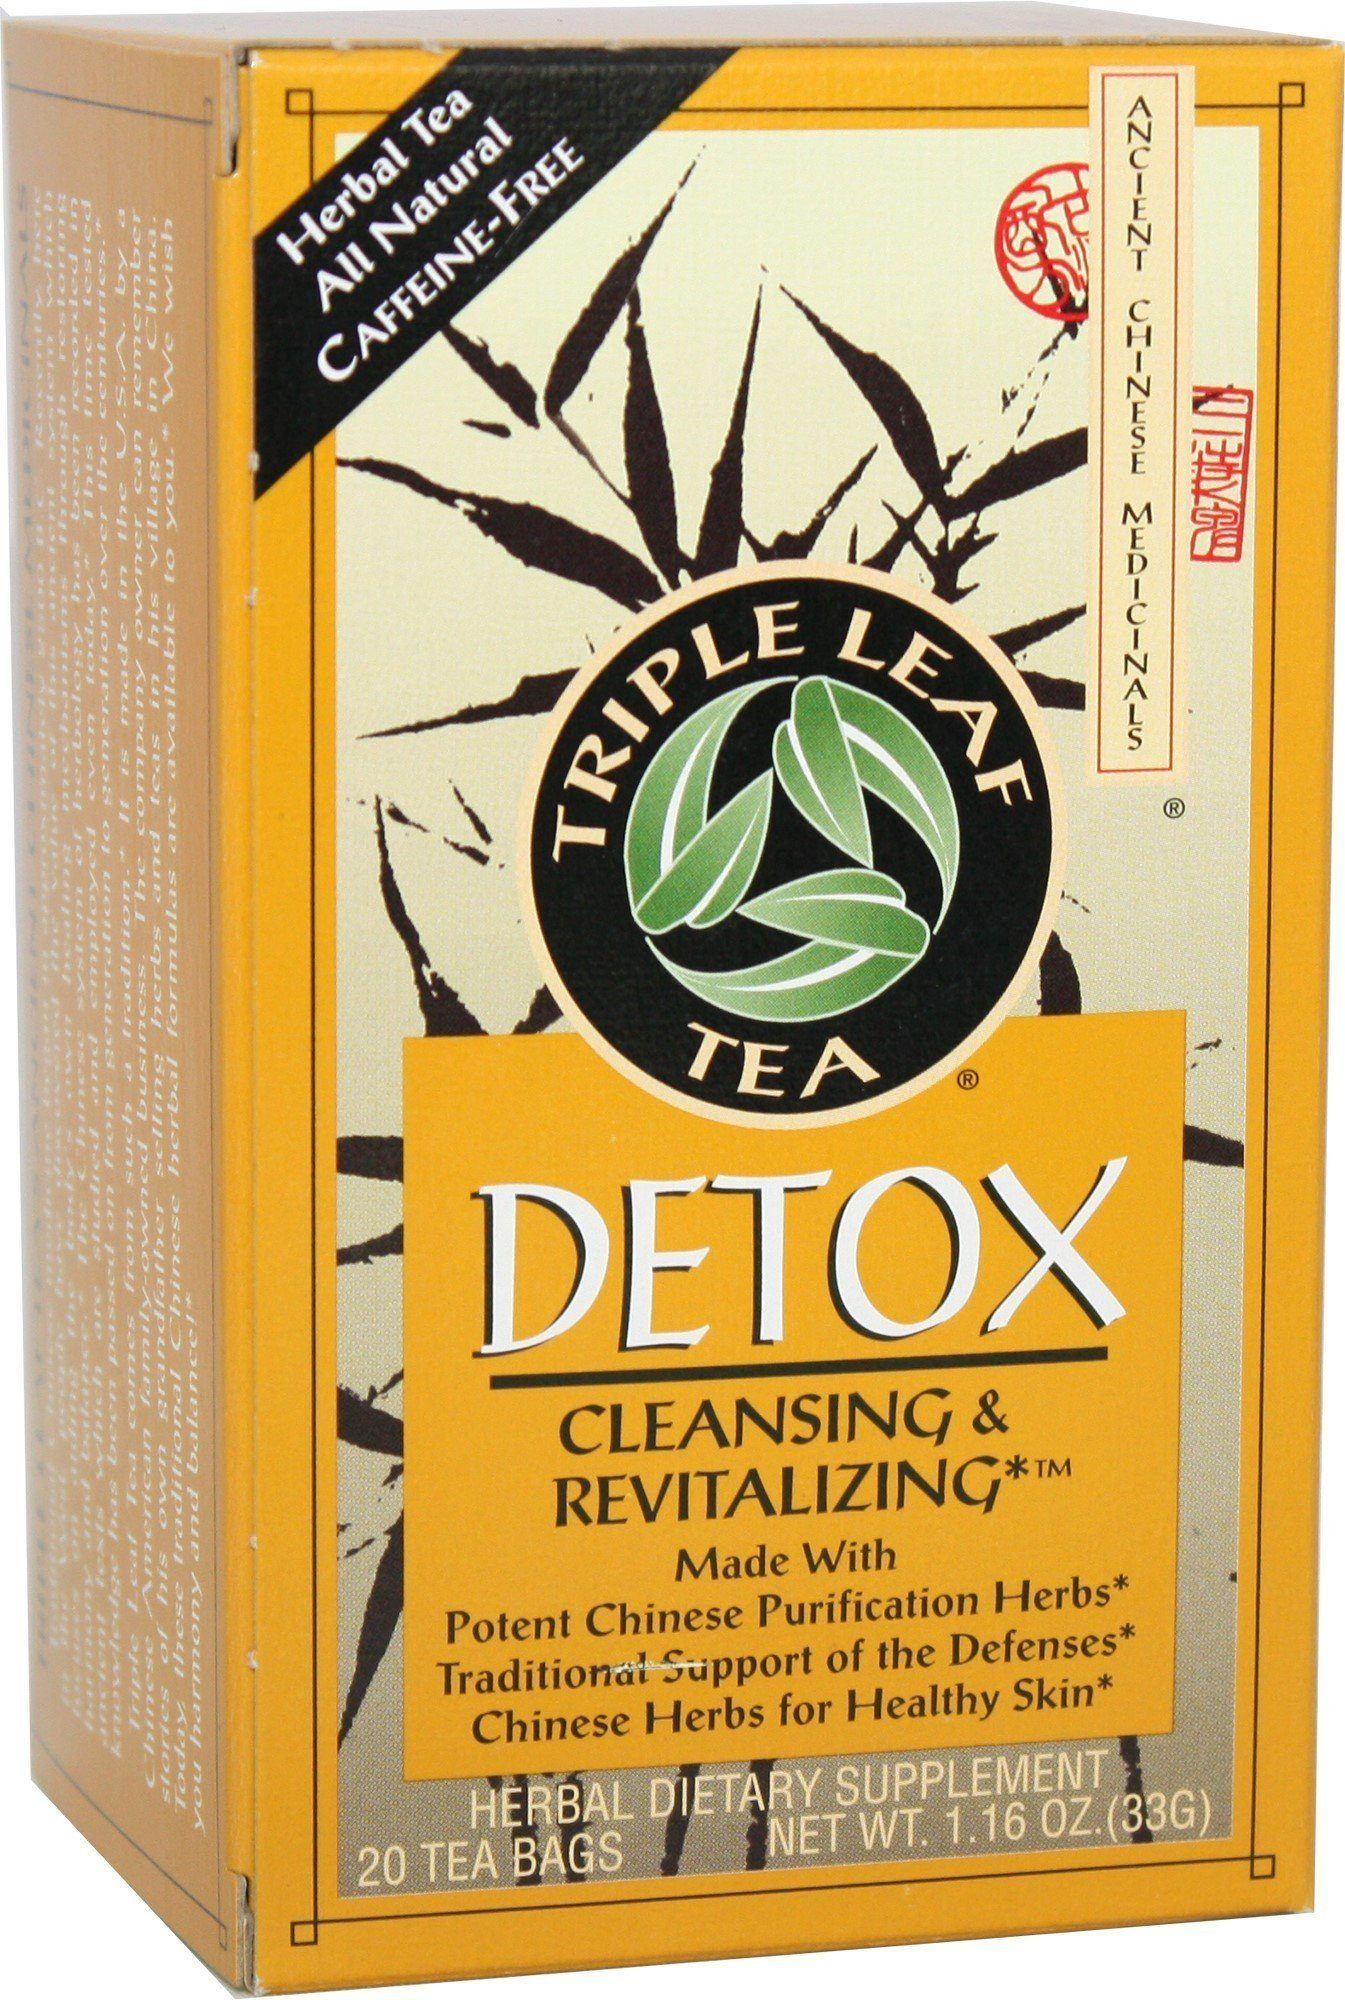 Food & Drink - Triple Leaf Brand - Detox Tea, 20 Bags